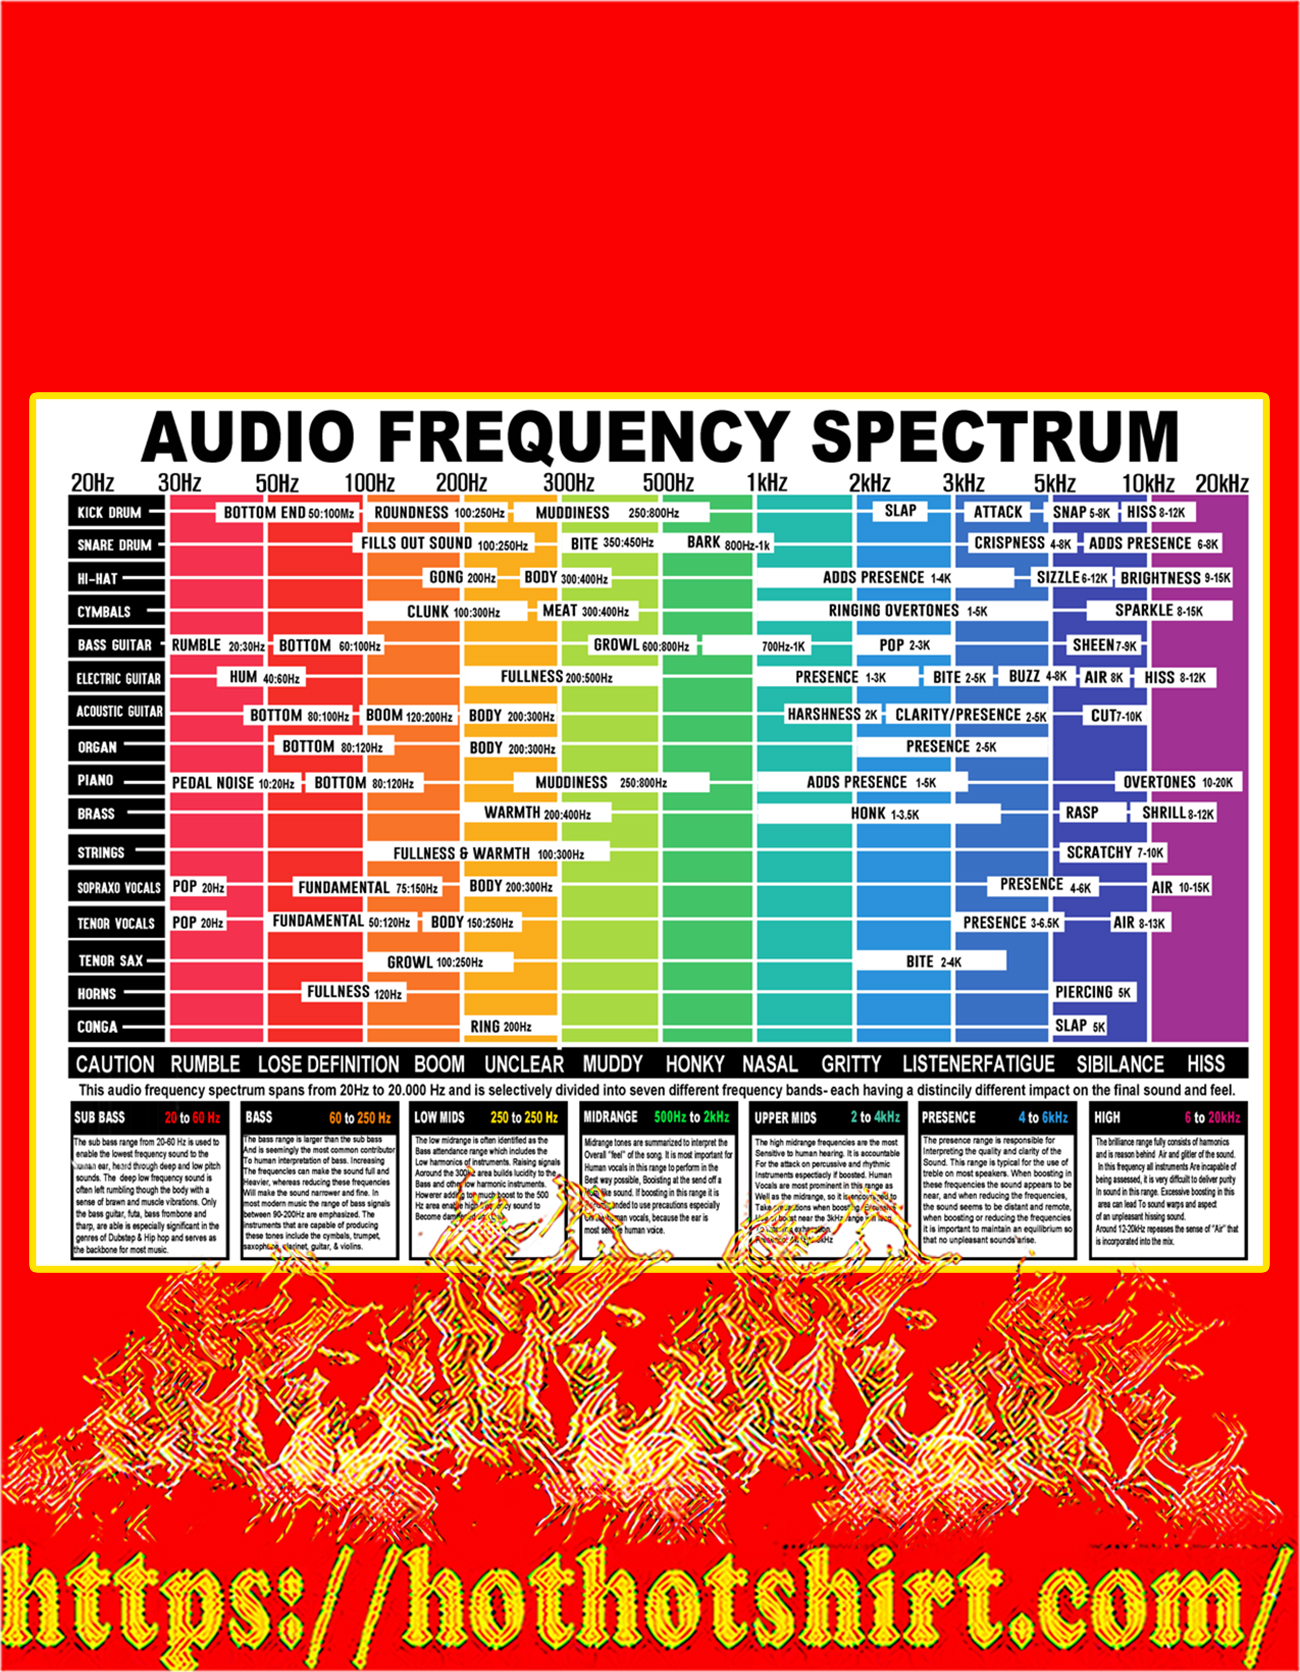 Audio frequency spectrum poster - A3